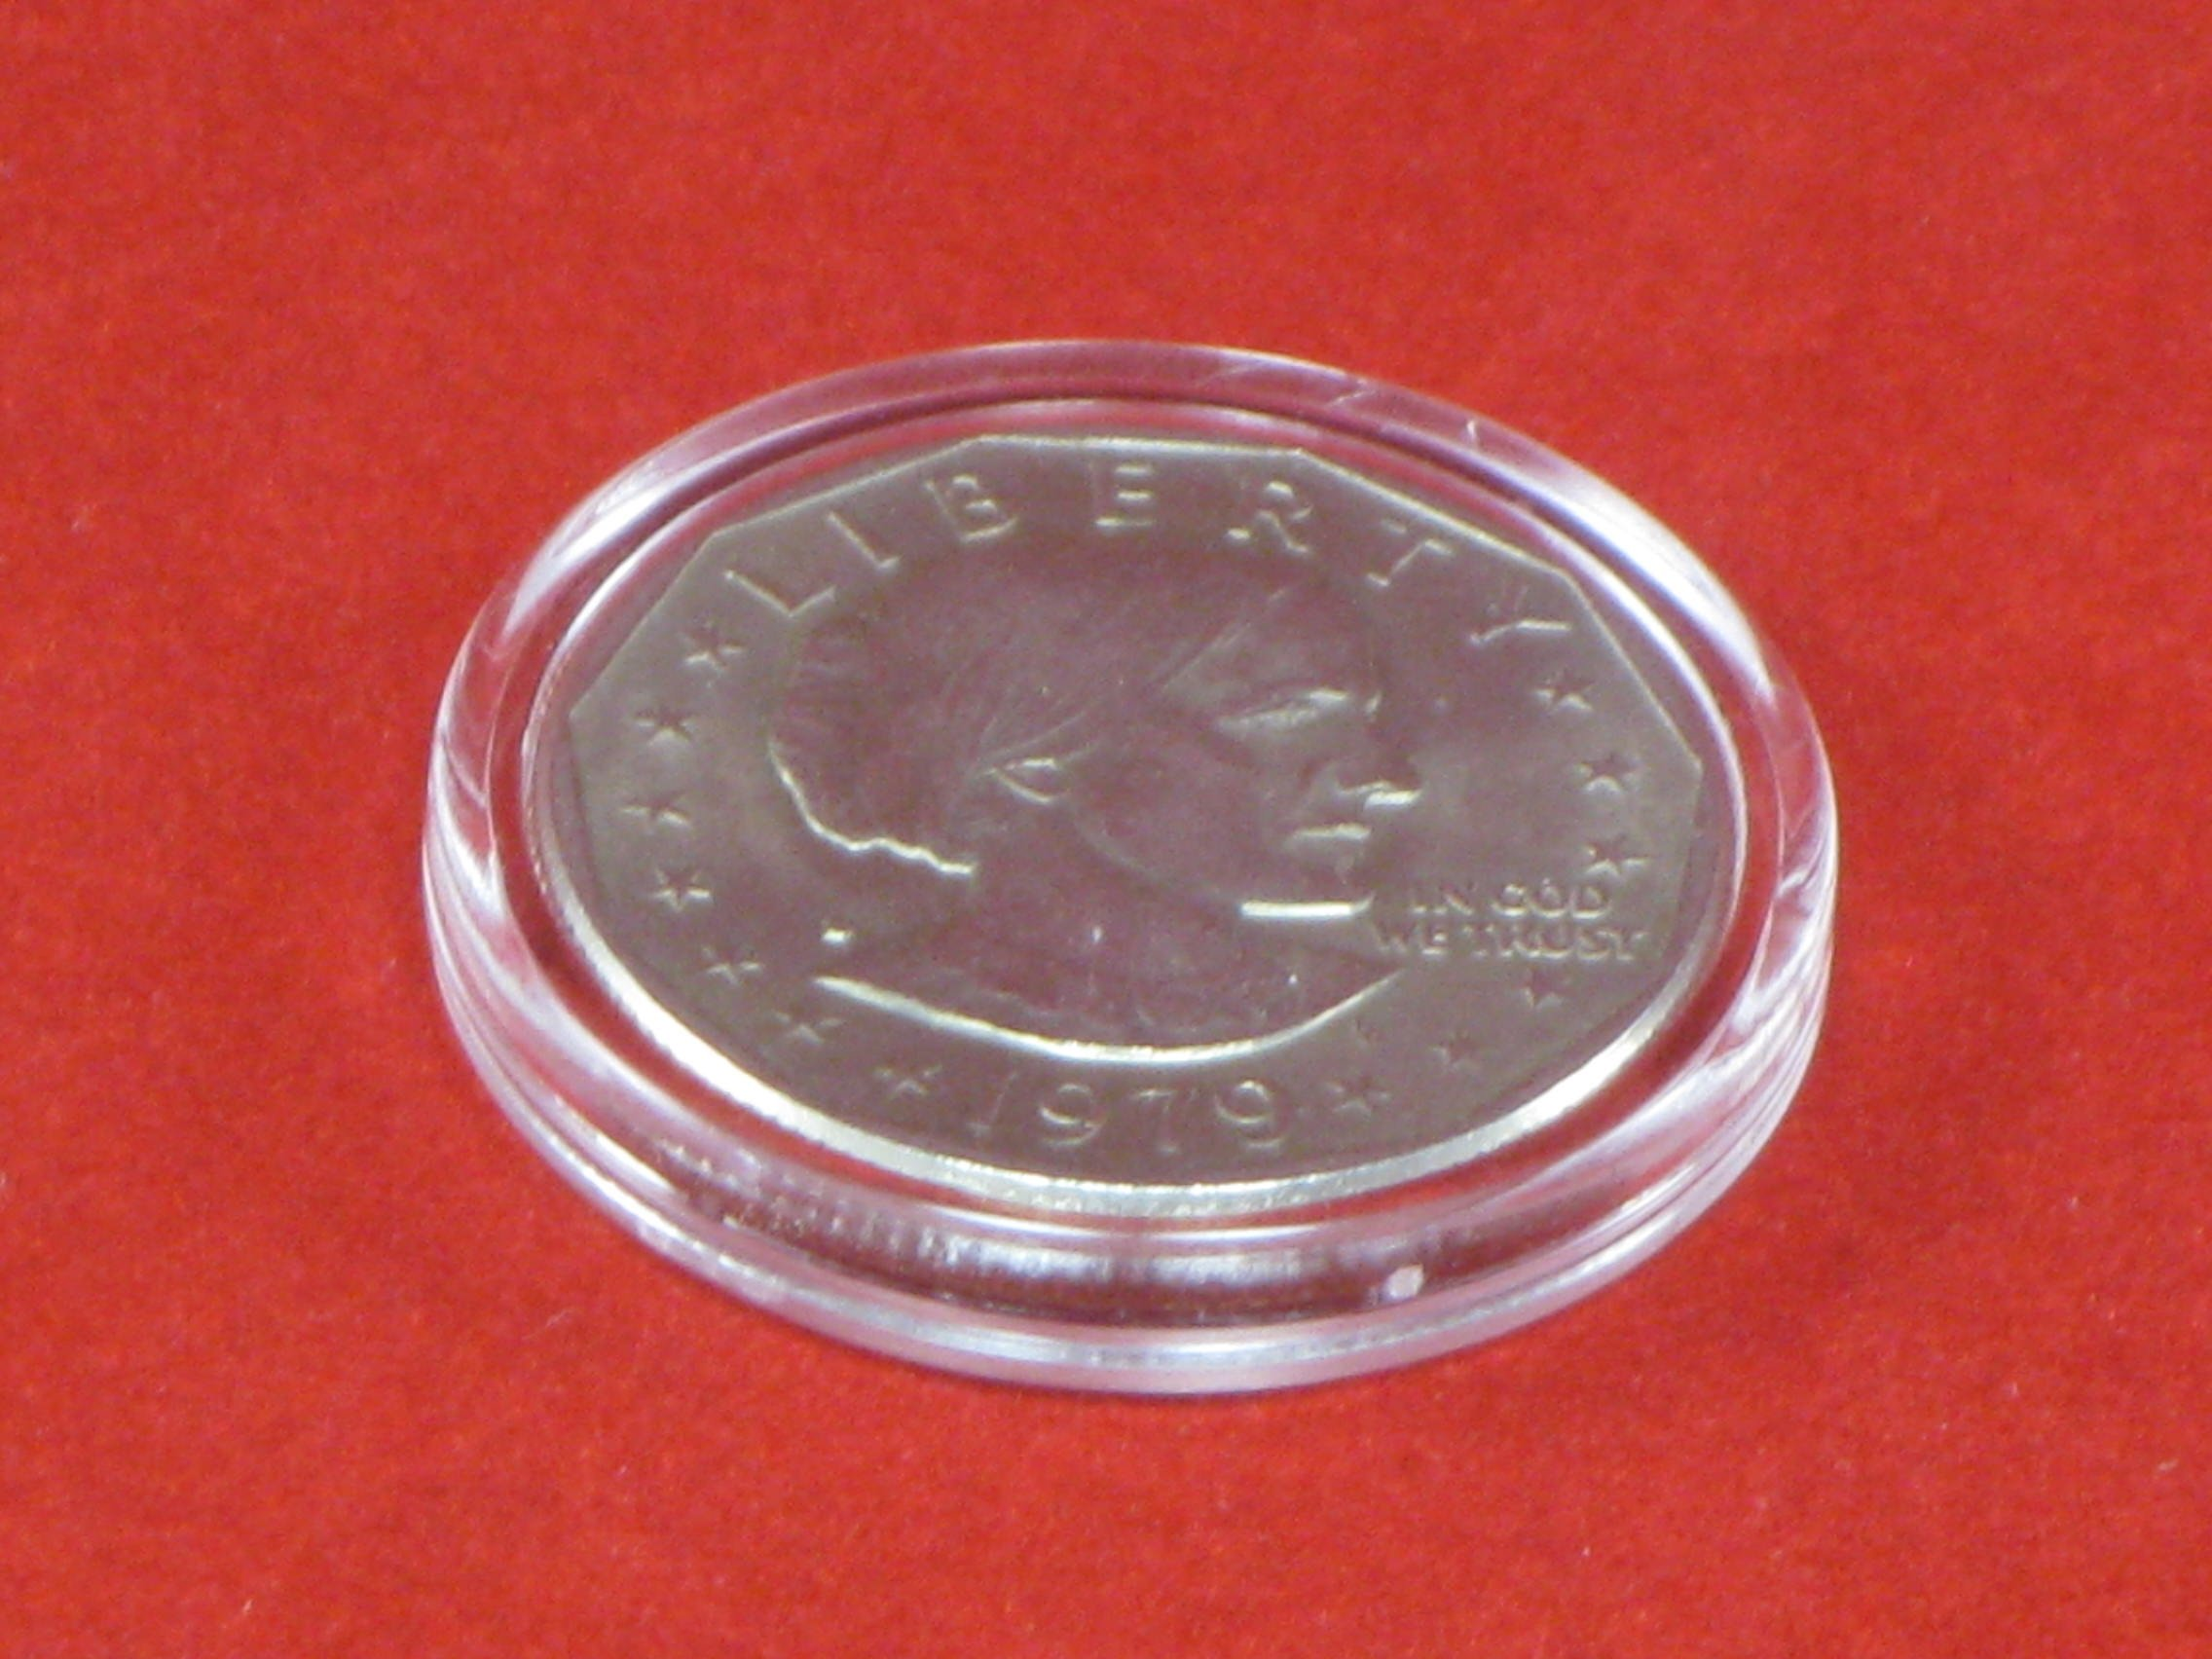 (20) Air-tite A-26 Direct Fit Coin Holder Capsules for SBA Susan B Anthony Sacagawea Small Presidential Dollars by Air-Tite (Image #1)